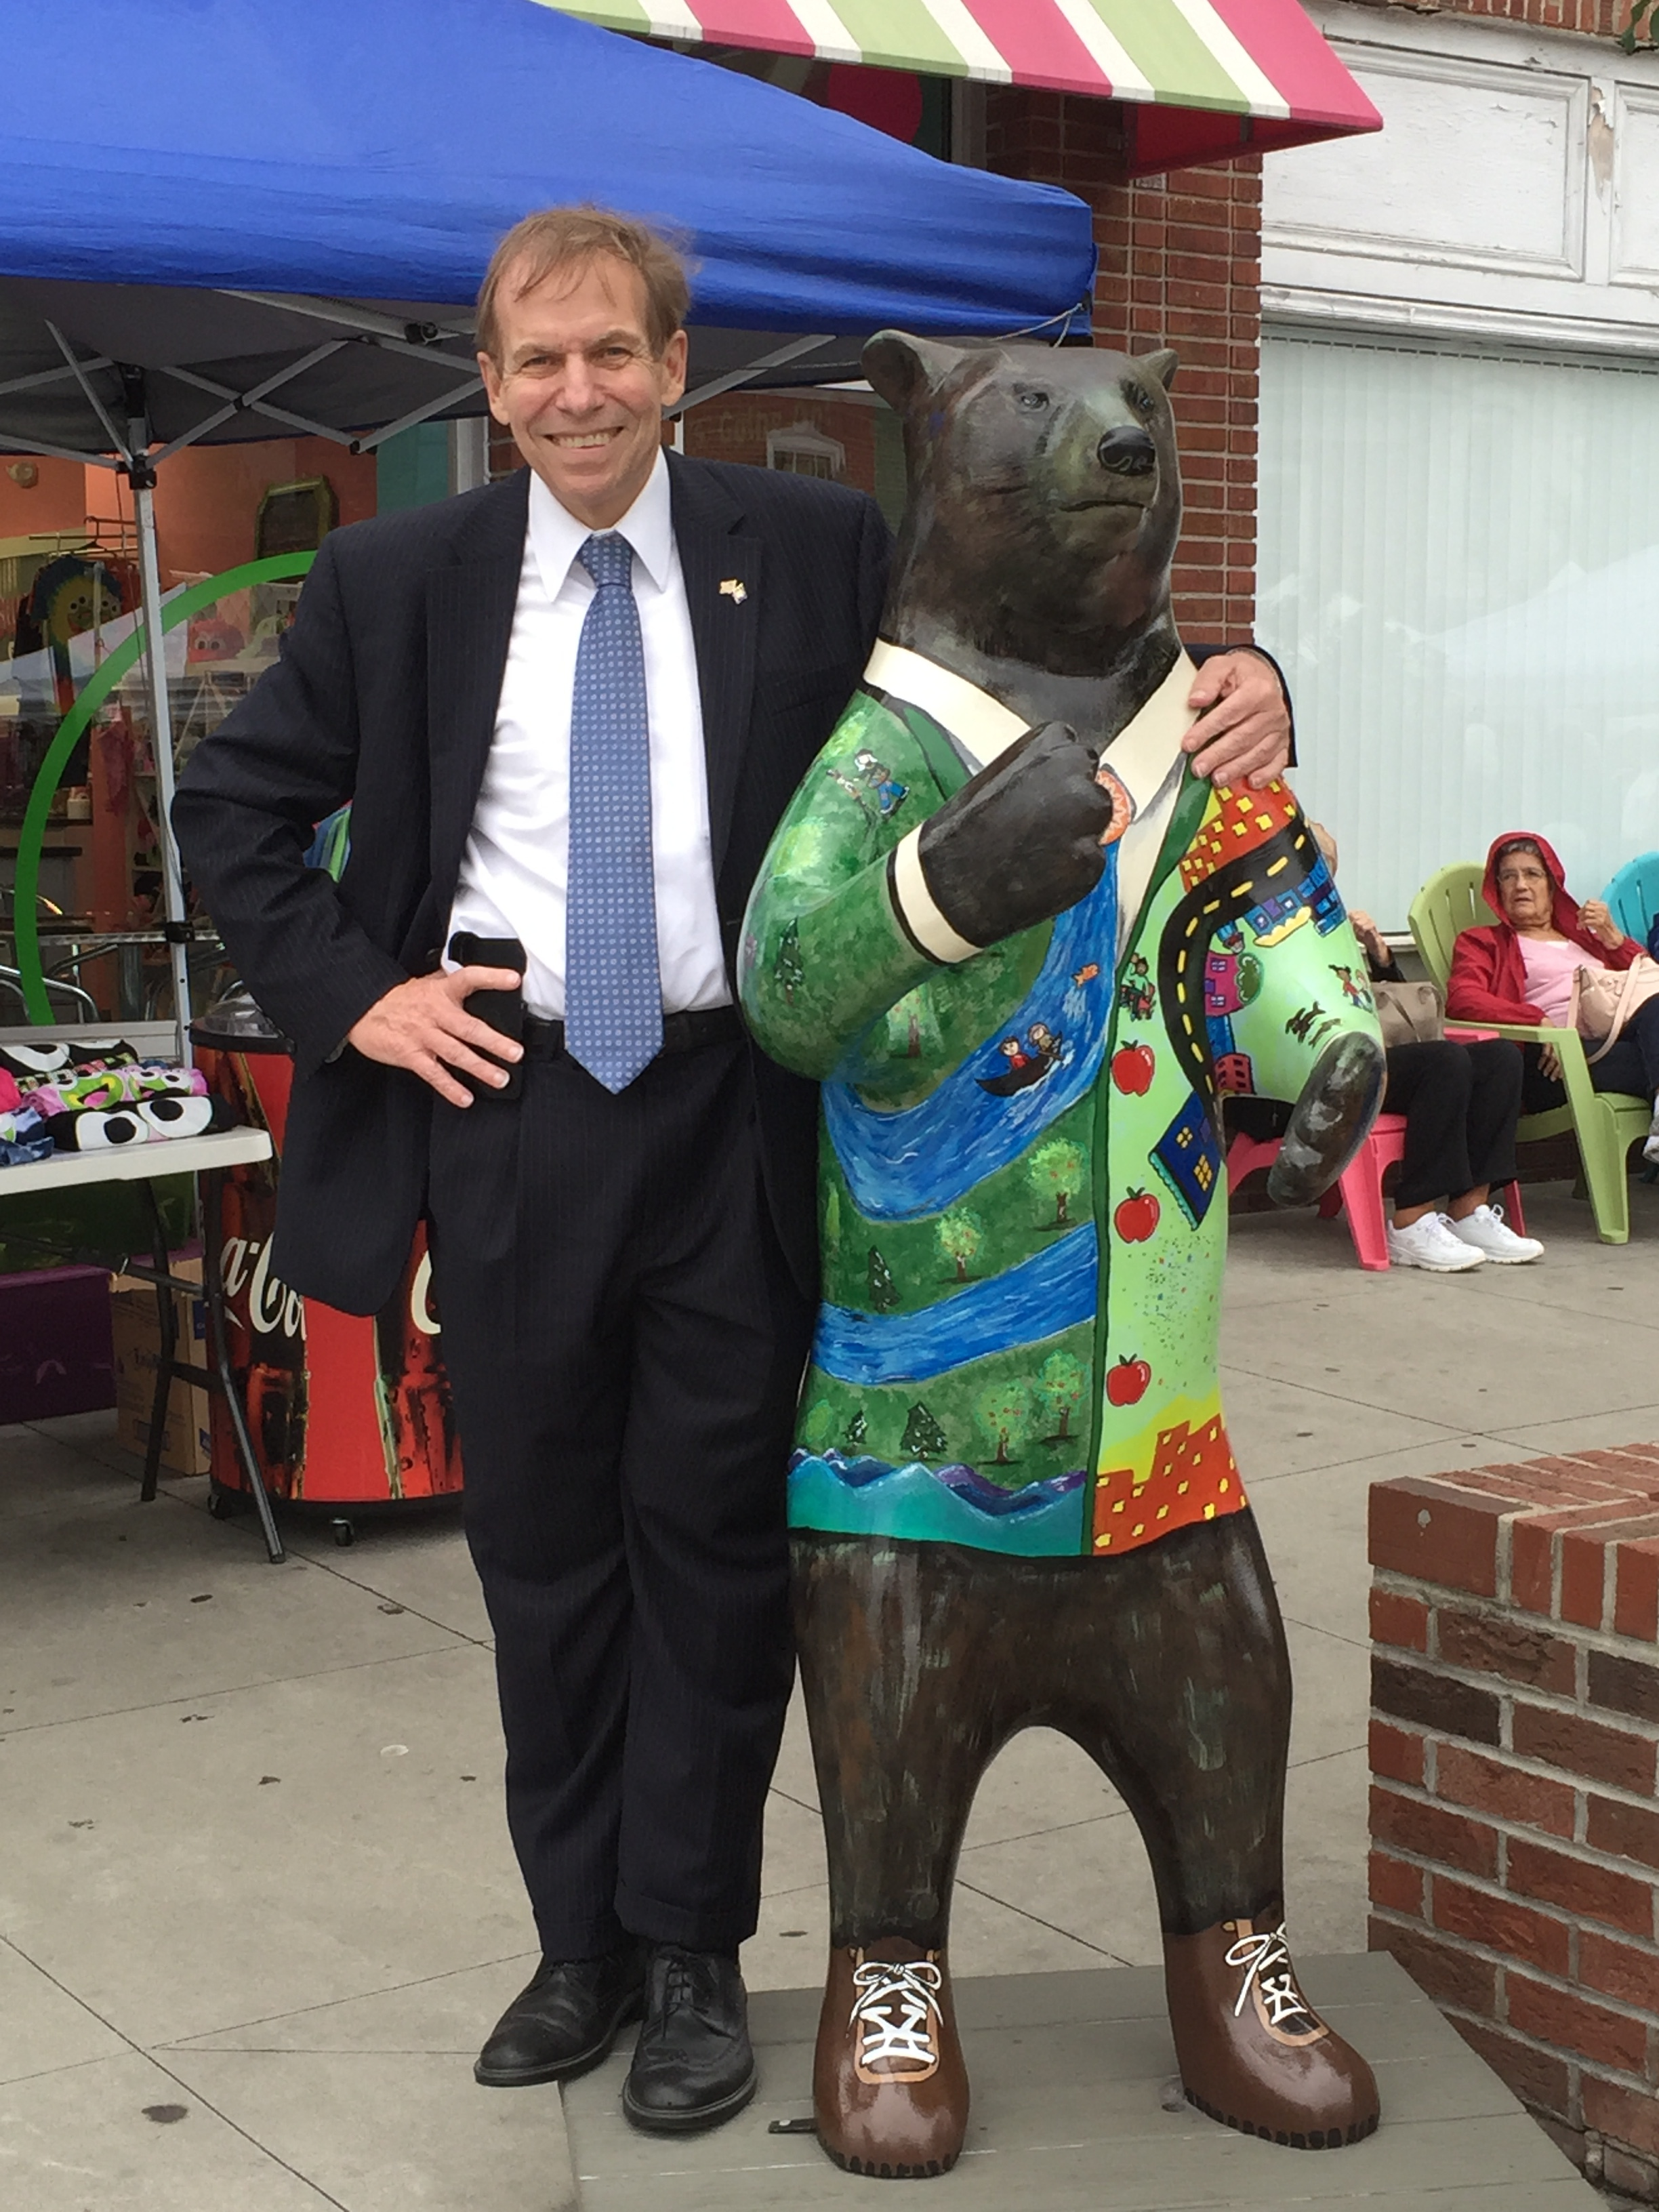 With an old friend at Apple Fest in Hendersonville, September 2, 2016.